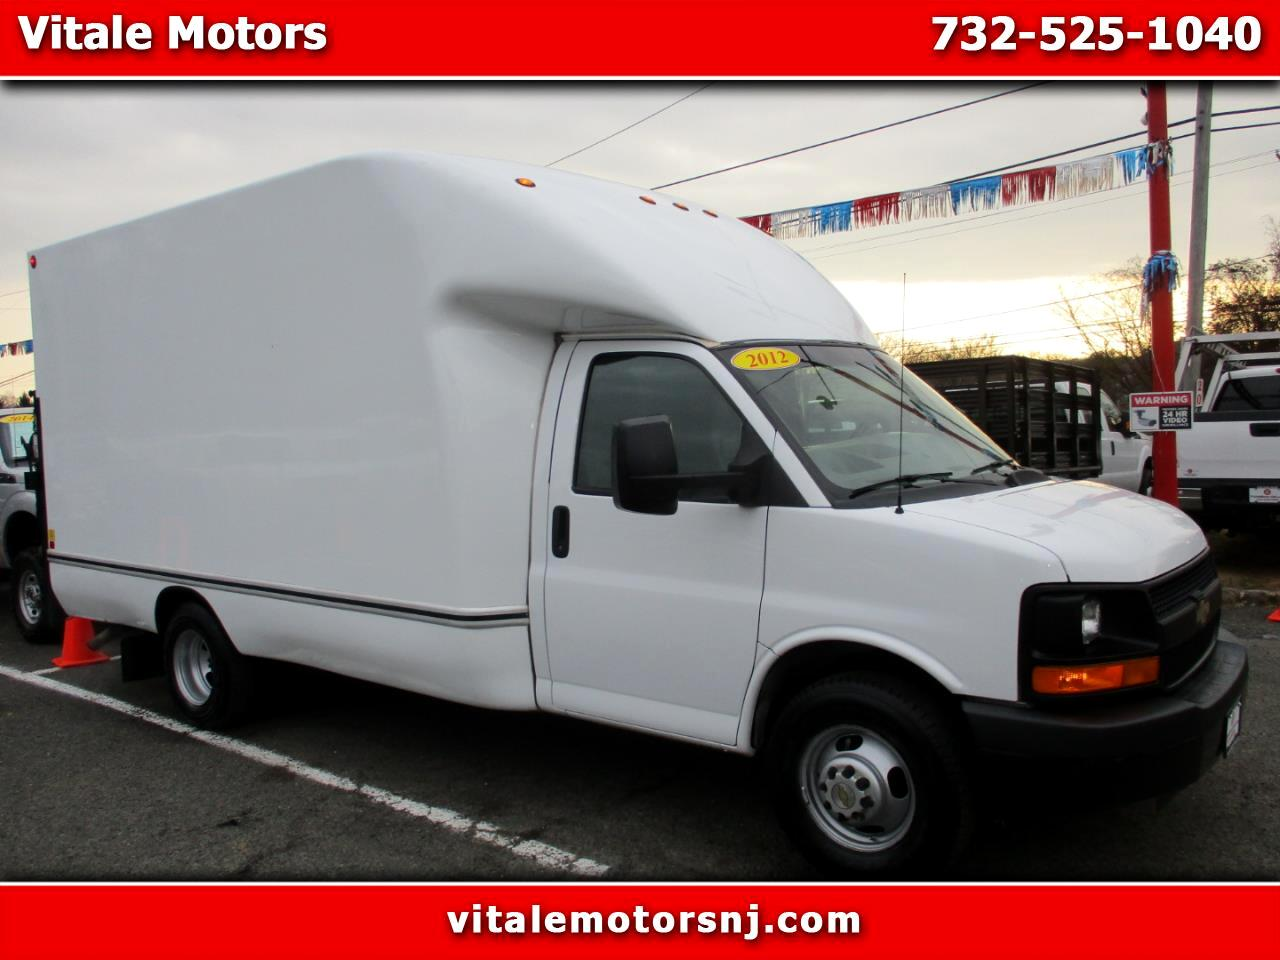 2012 Chevrolet Express G3500 BOX TRUCK 14 FOOT W/ LIFT GATE